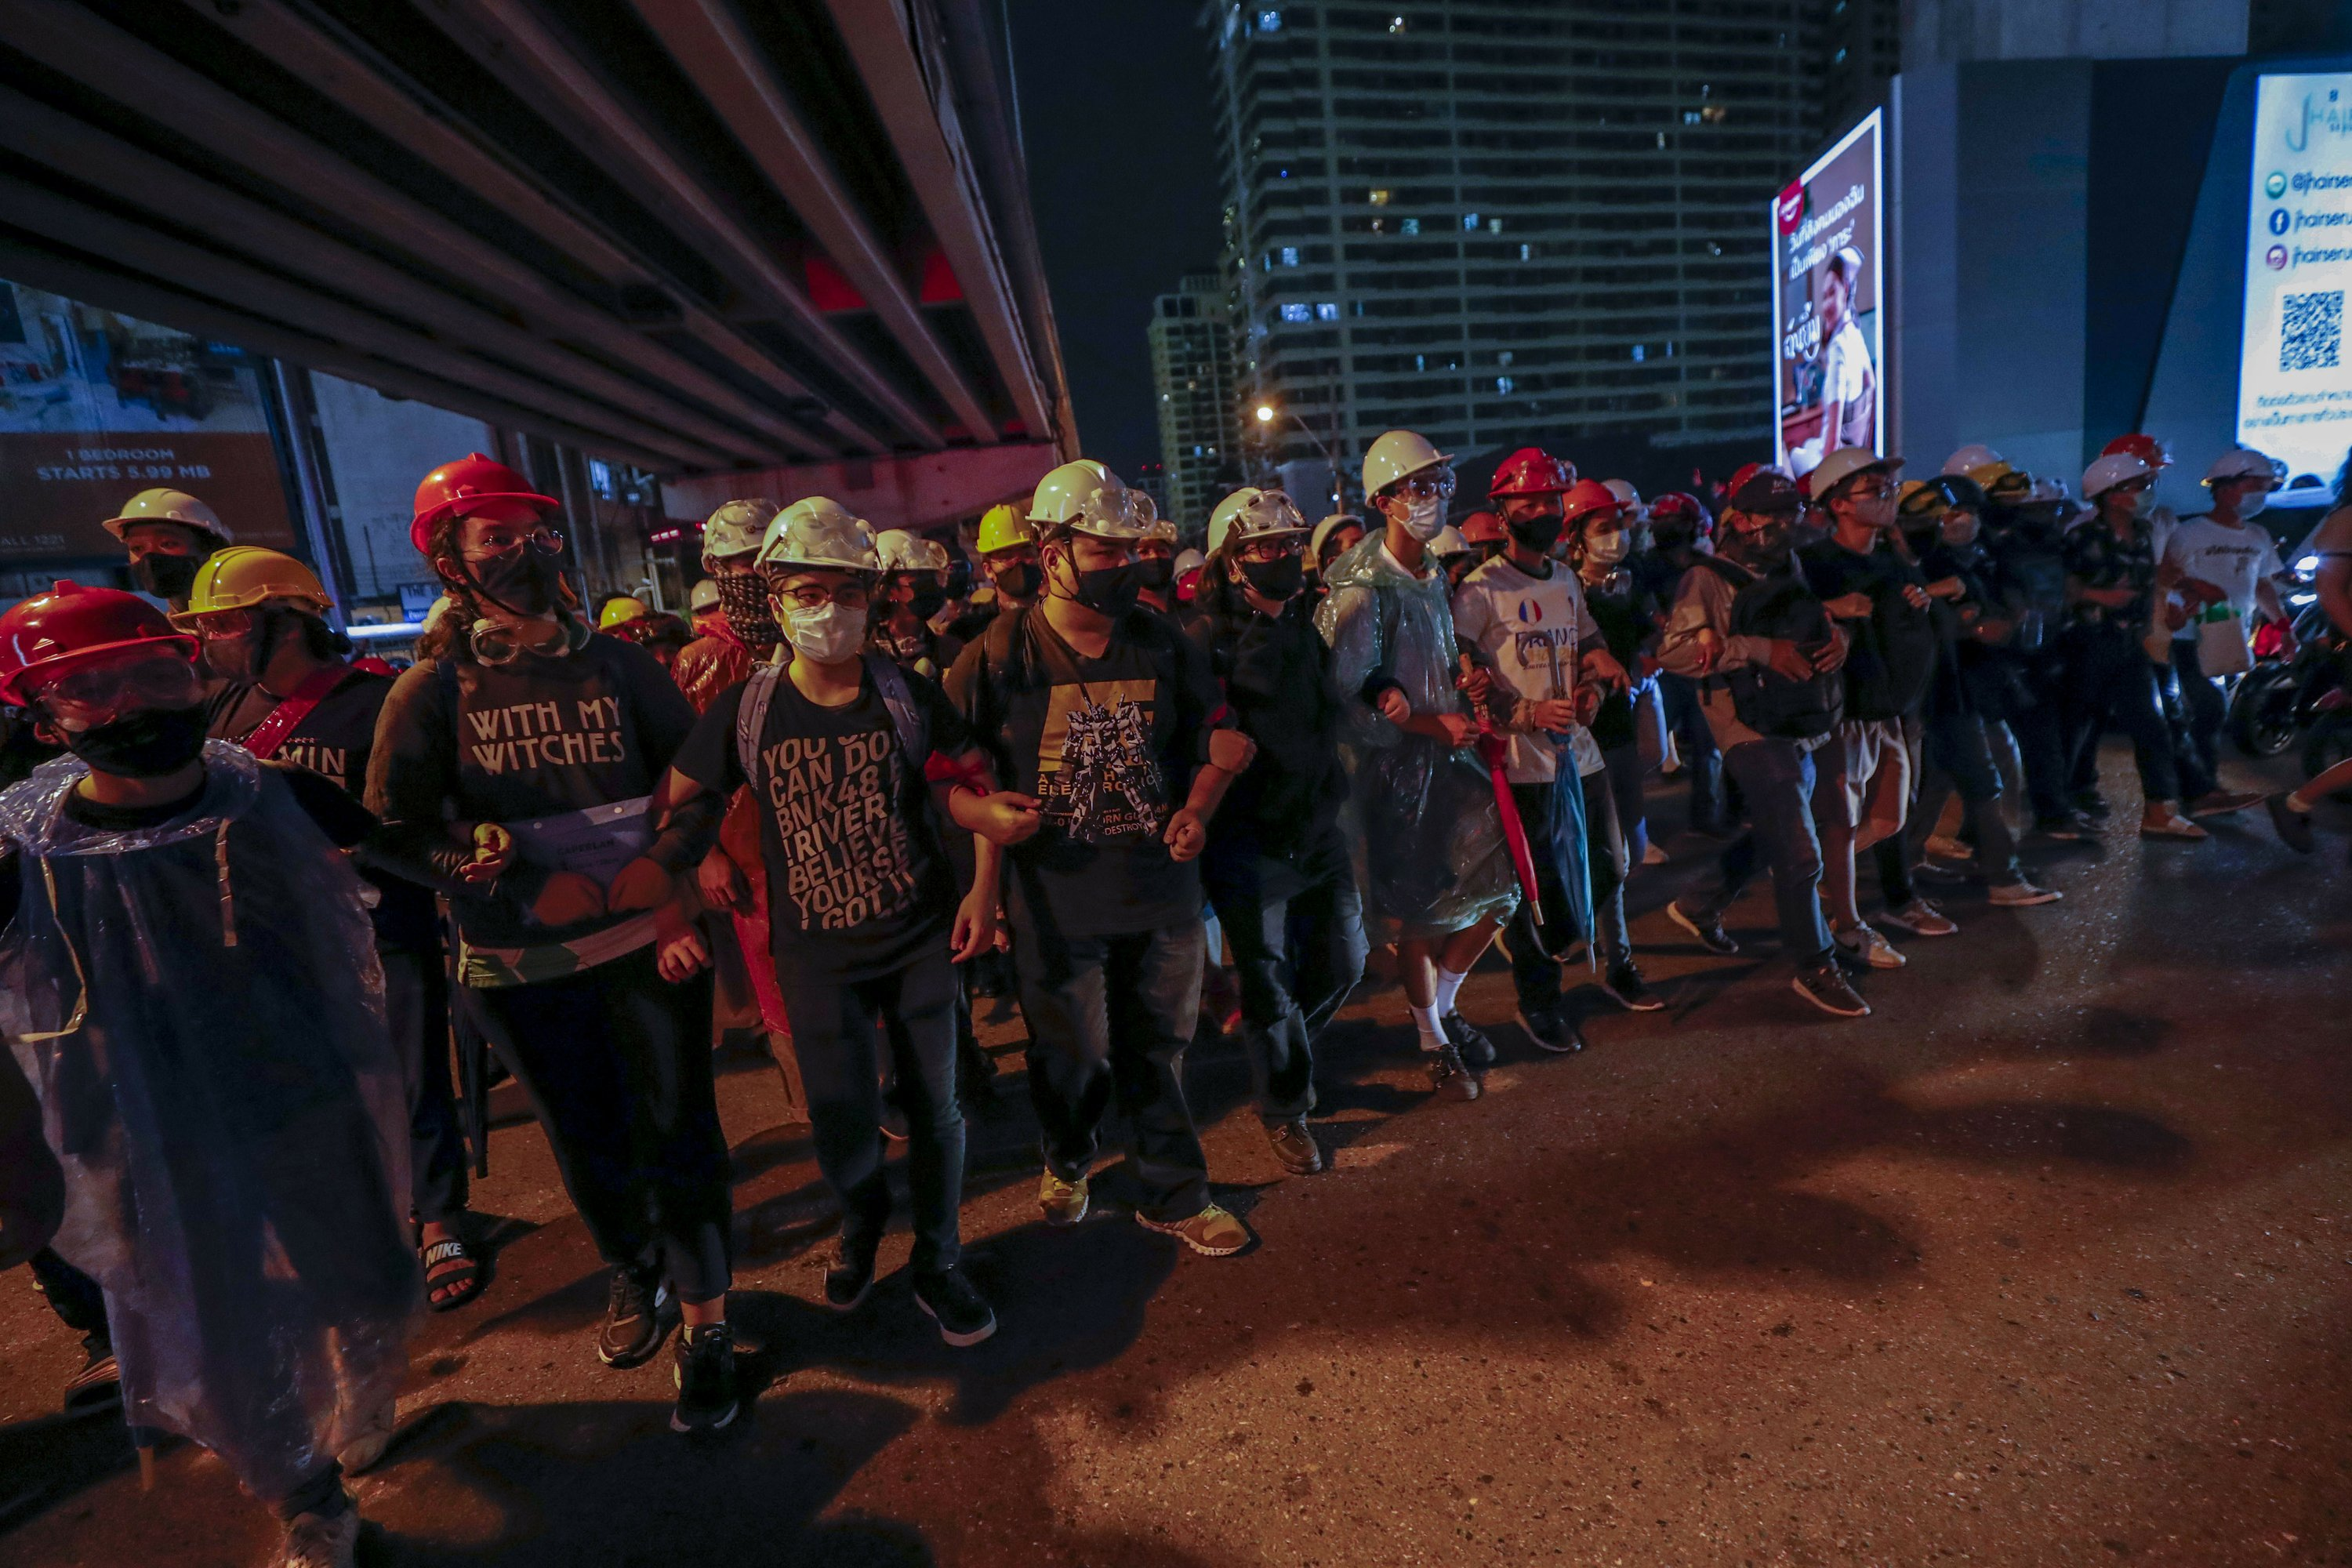 Thailand cancels emergency decree in bid to calm protests - The Associated Press